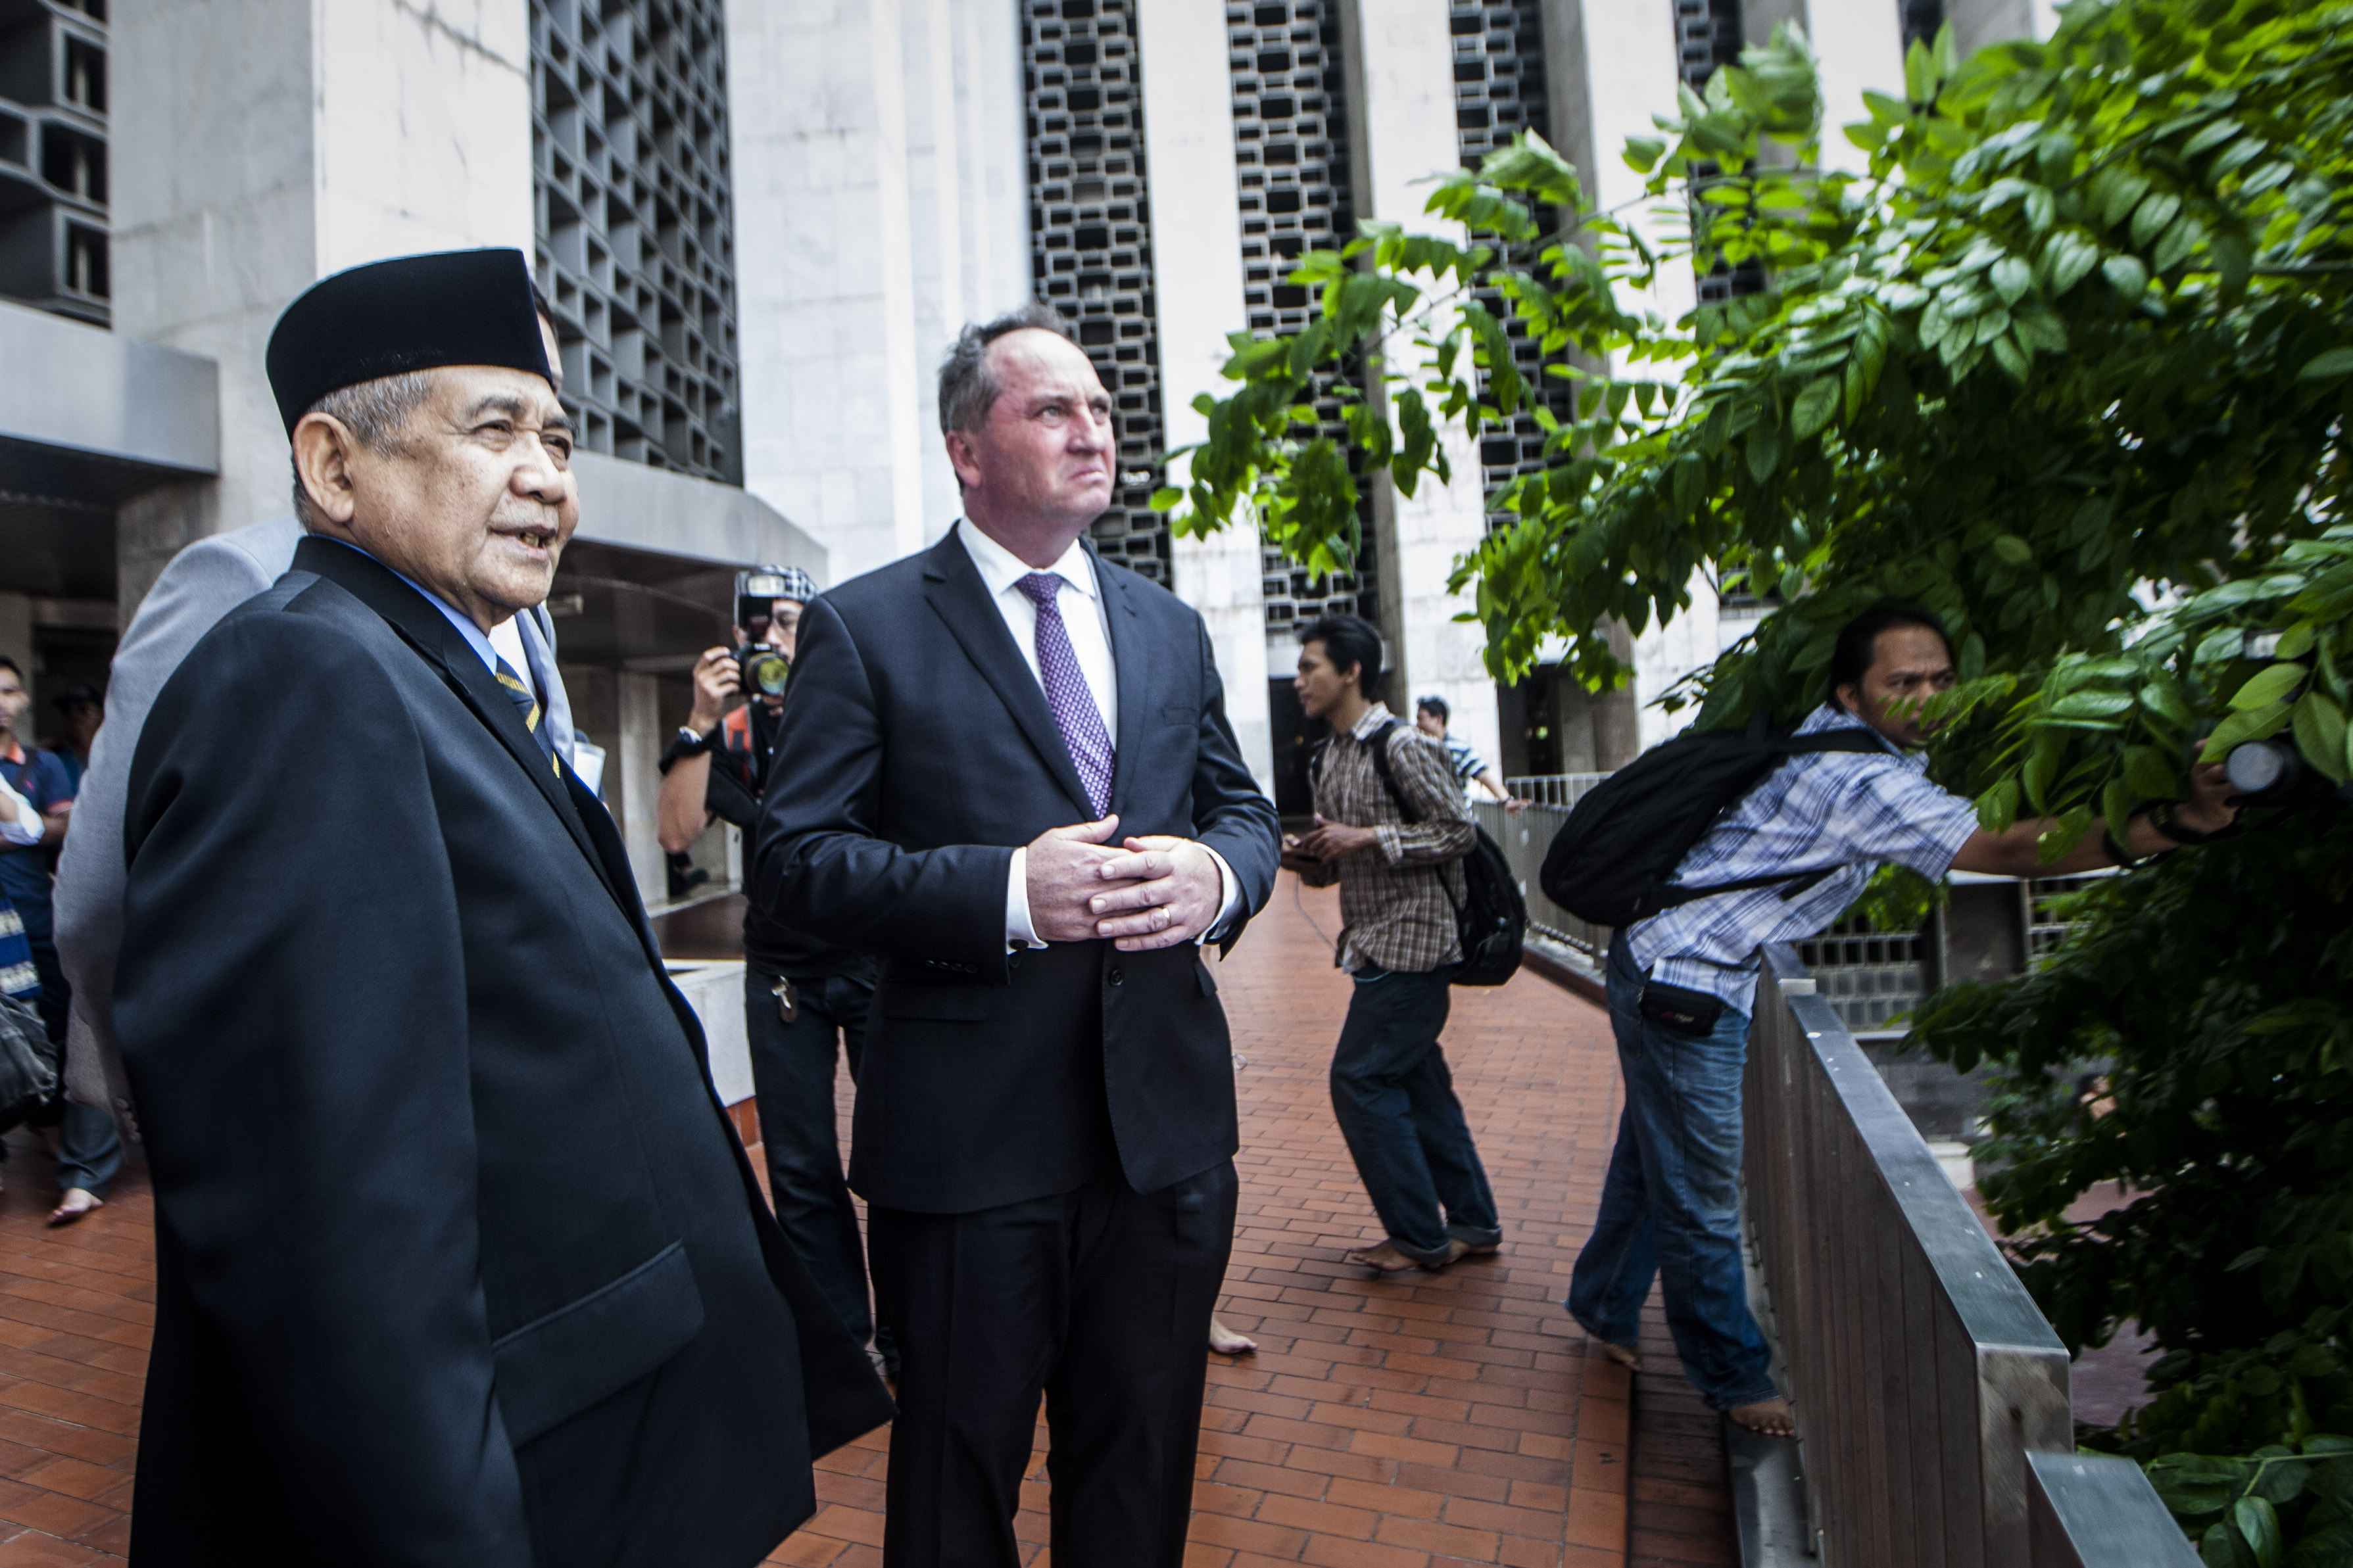 Barnaby Joyce: The right man to mend fences with Indonesia